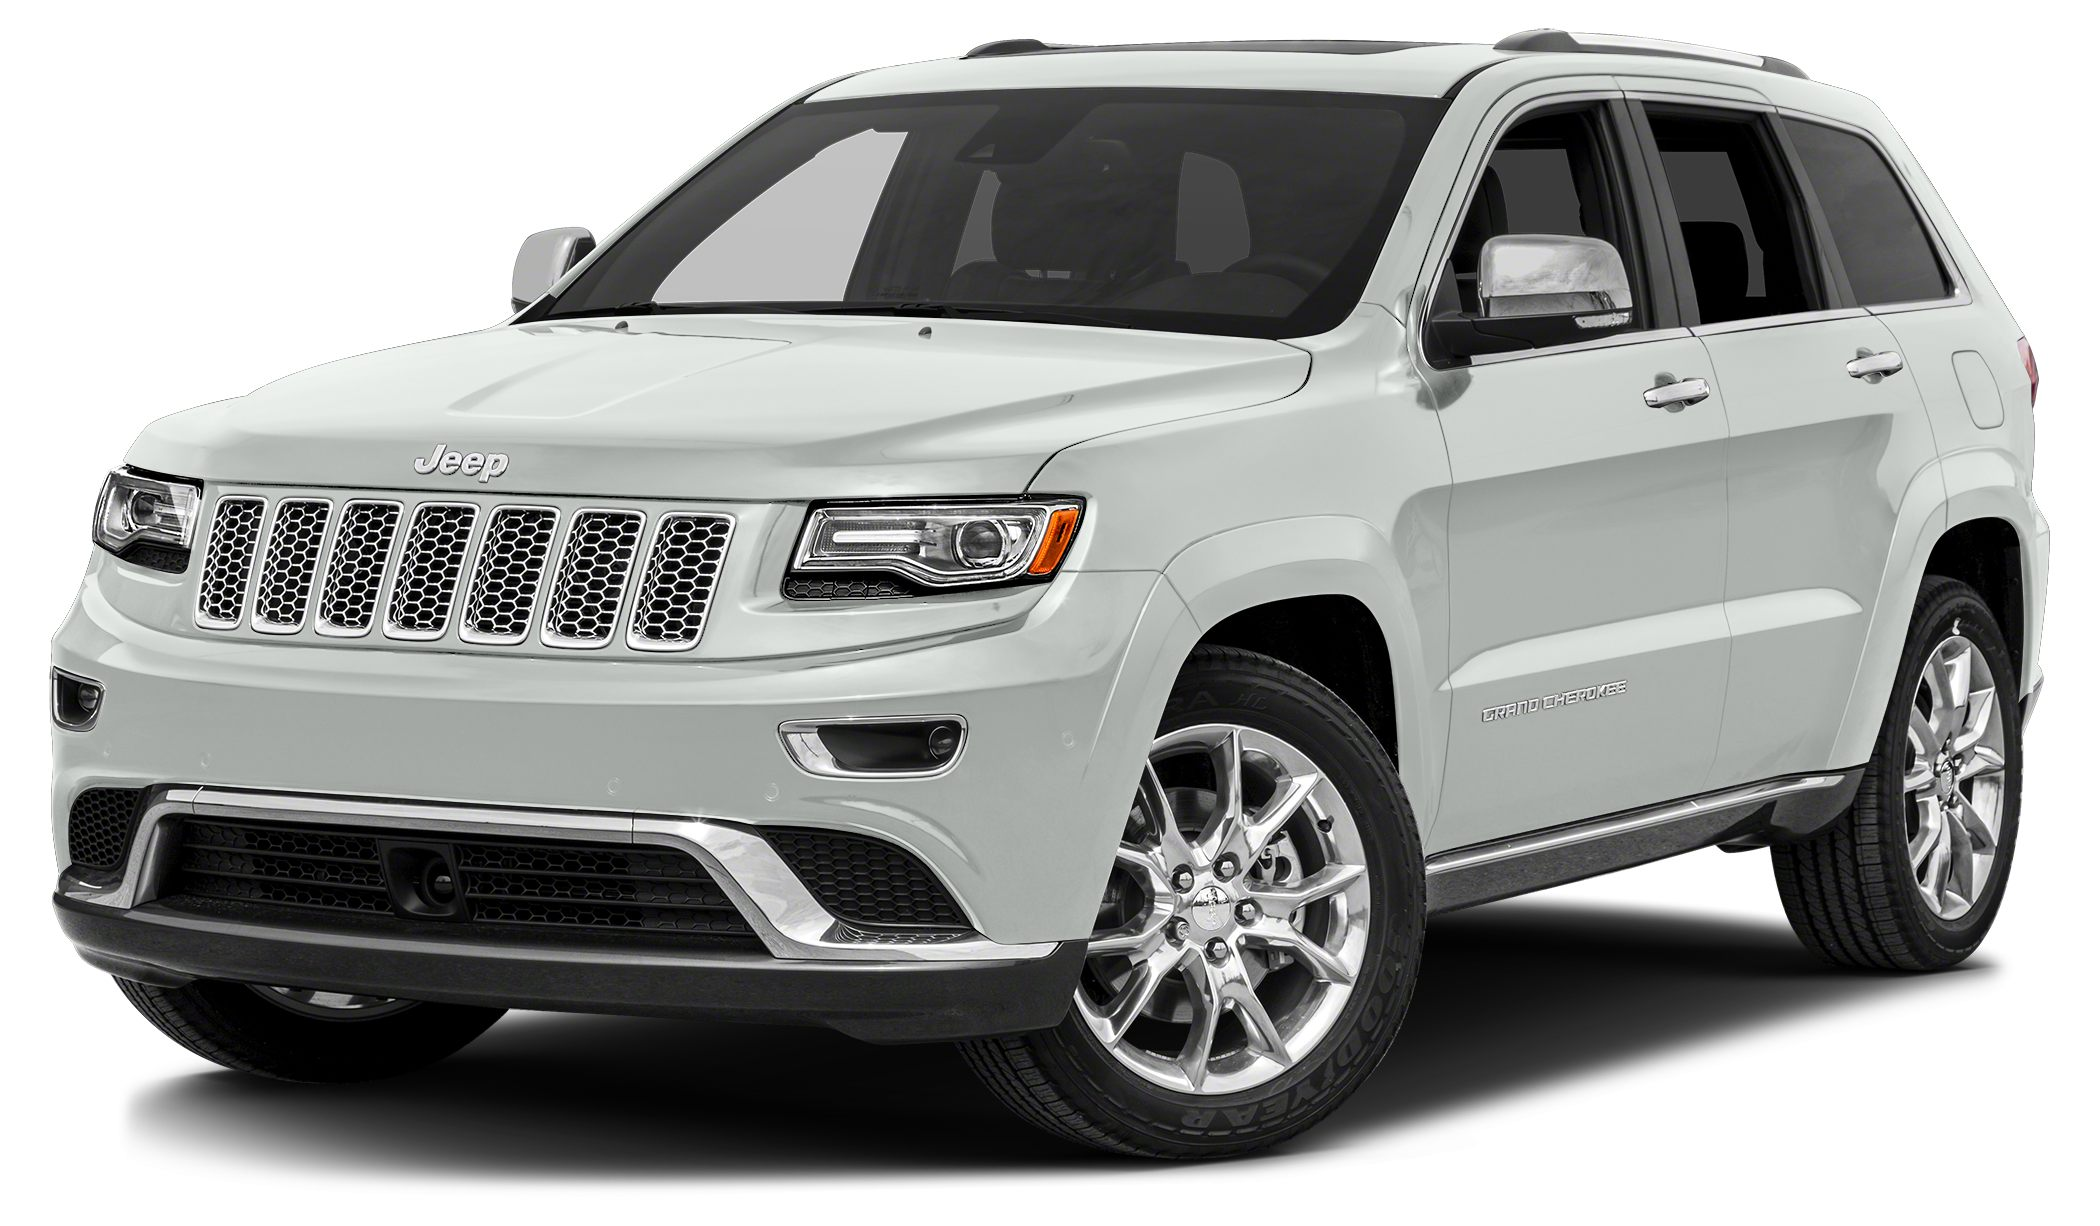 2016 Jeep Grand Cherokee Summit Hurry and take advantage now Where are you going to stumble upon